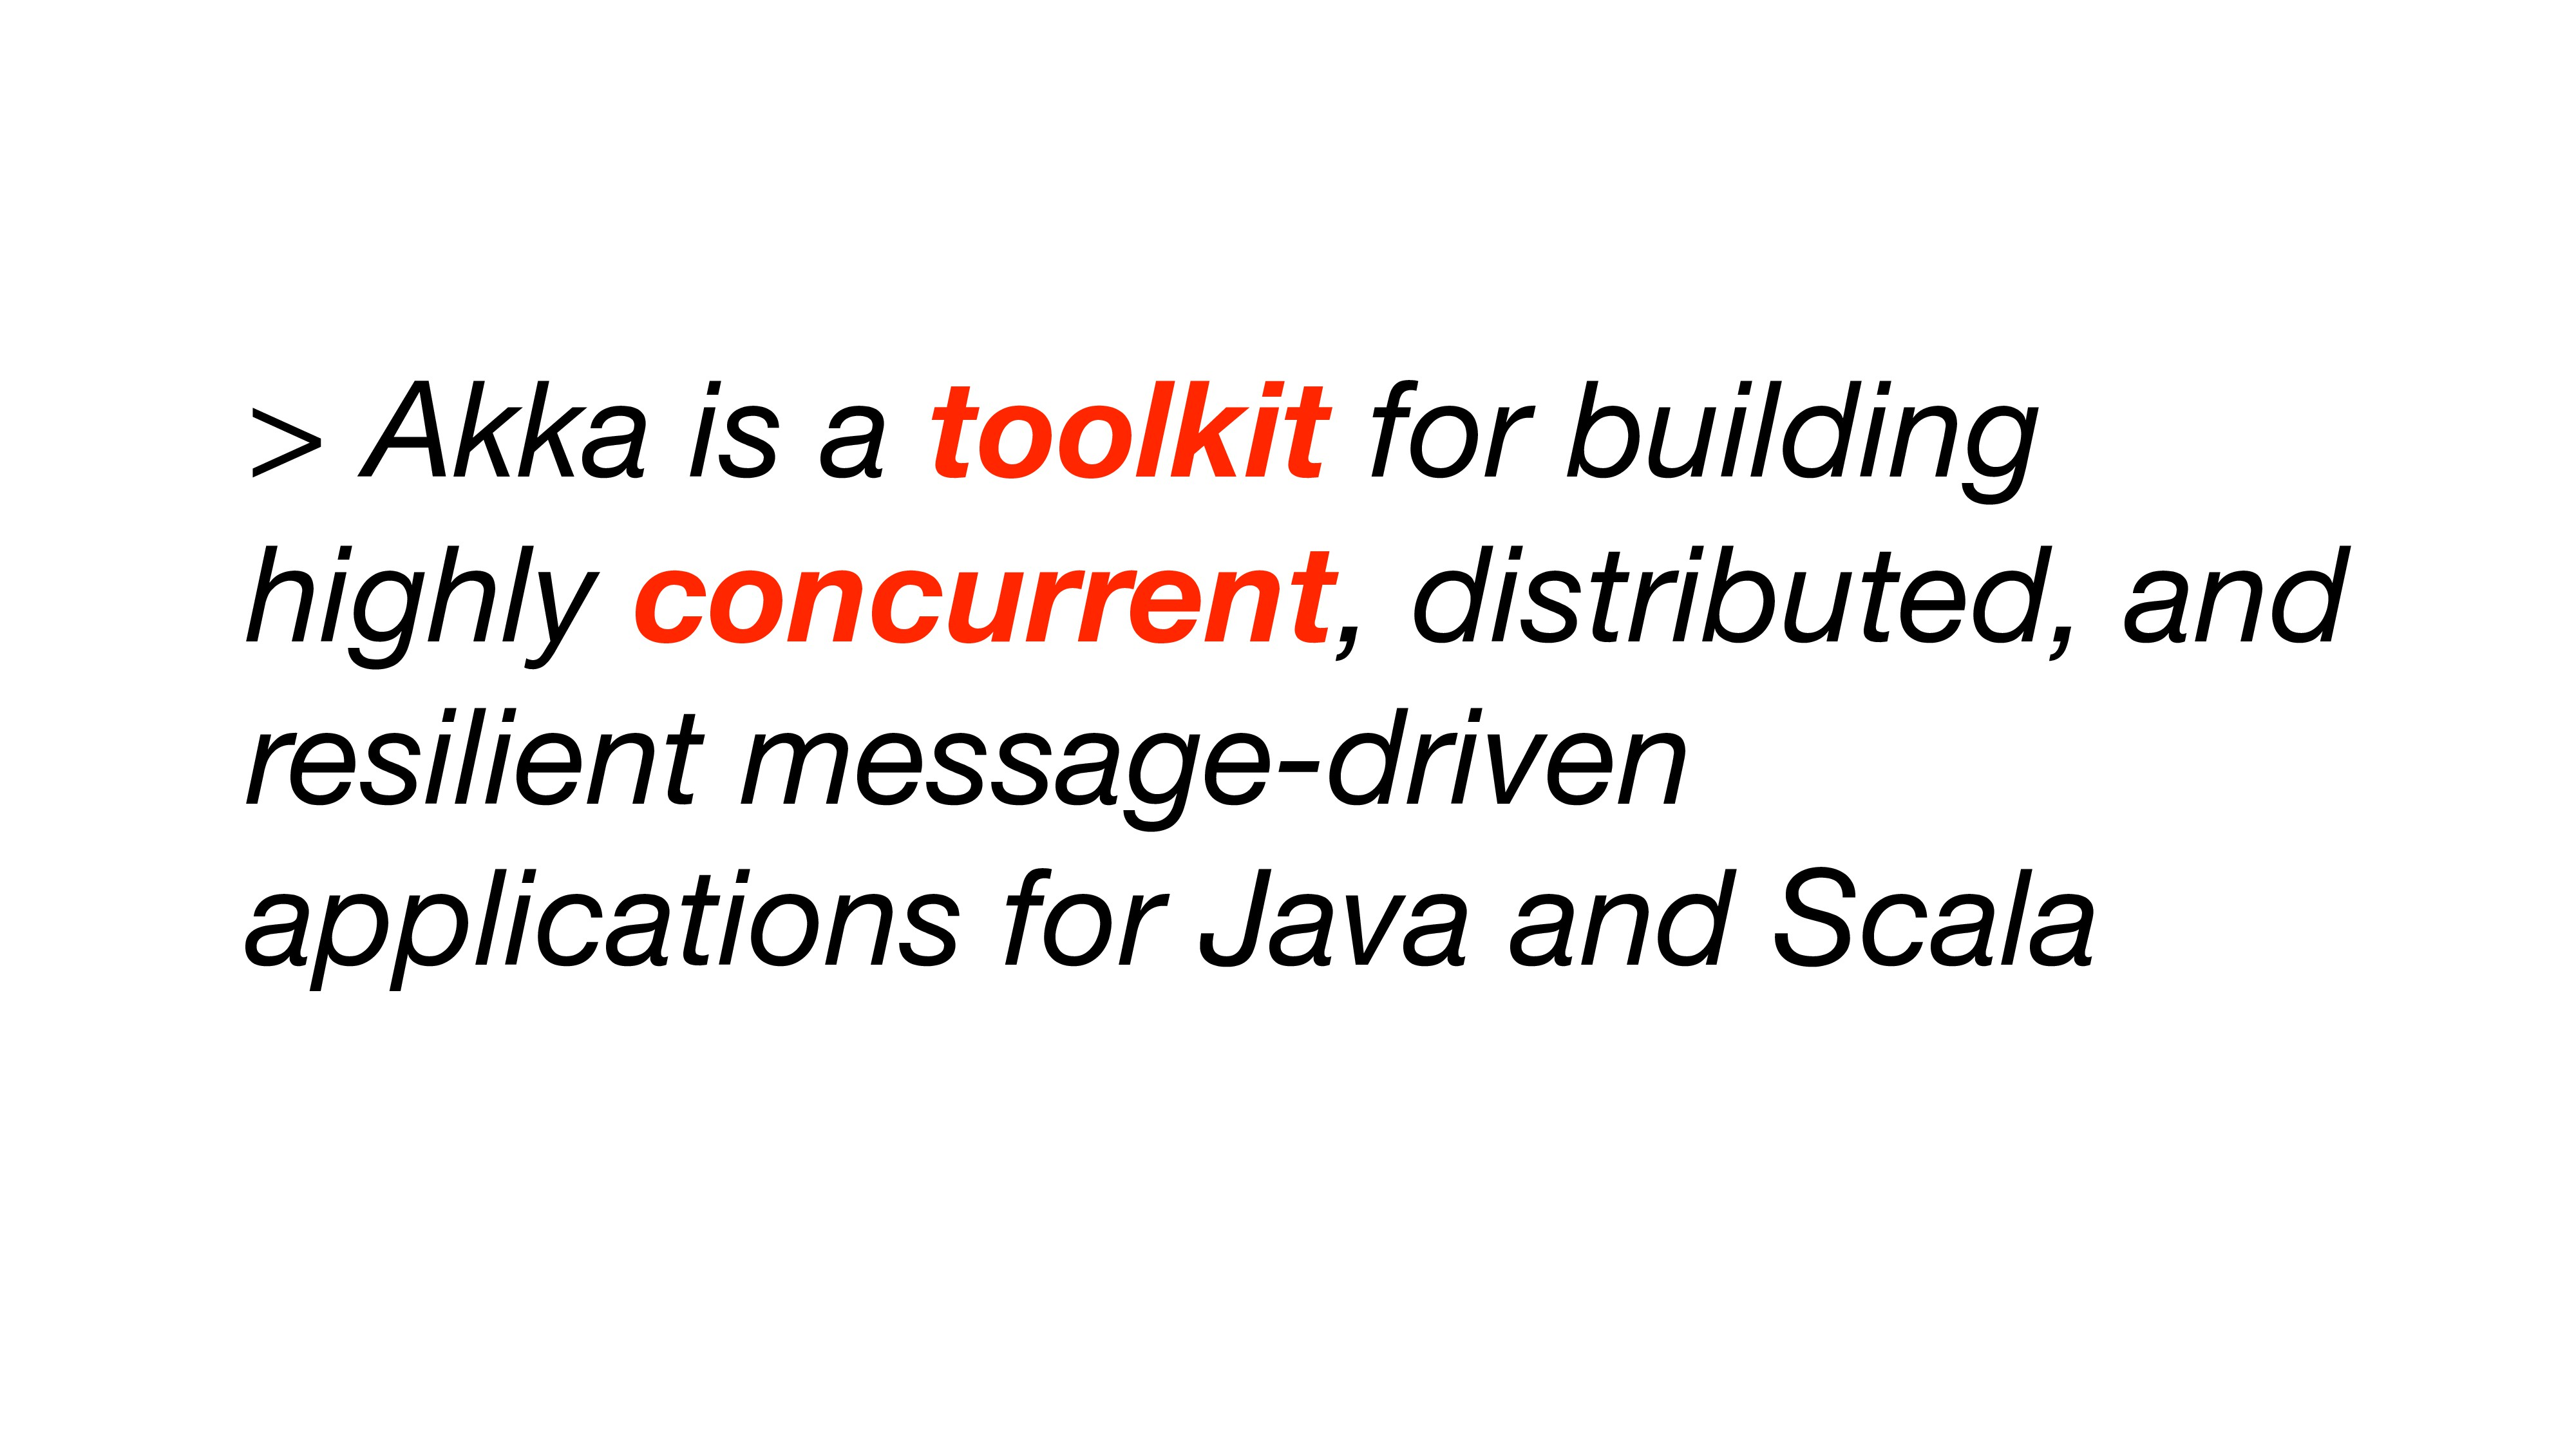 > Akka is a toolkit for building highly concurr...